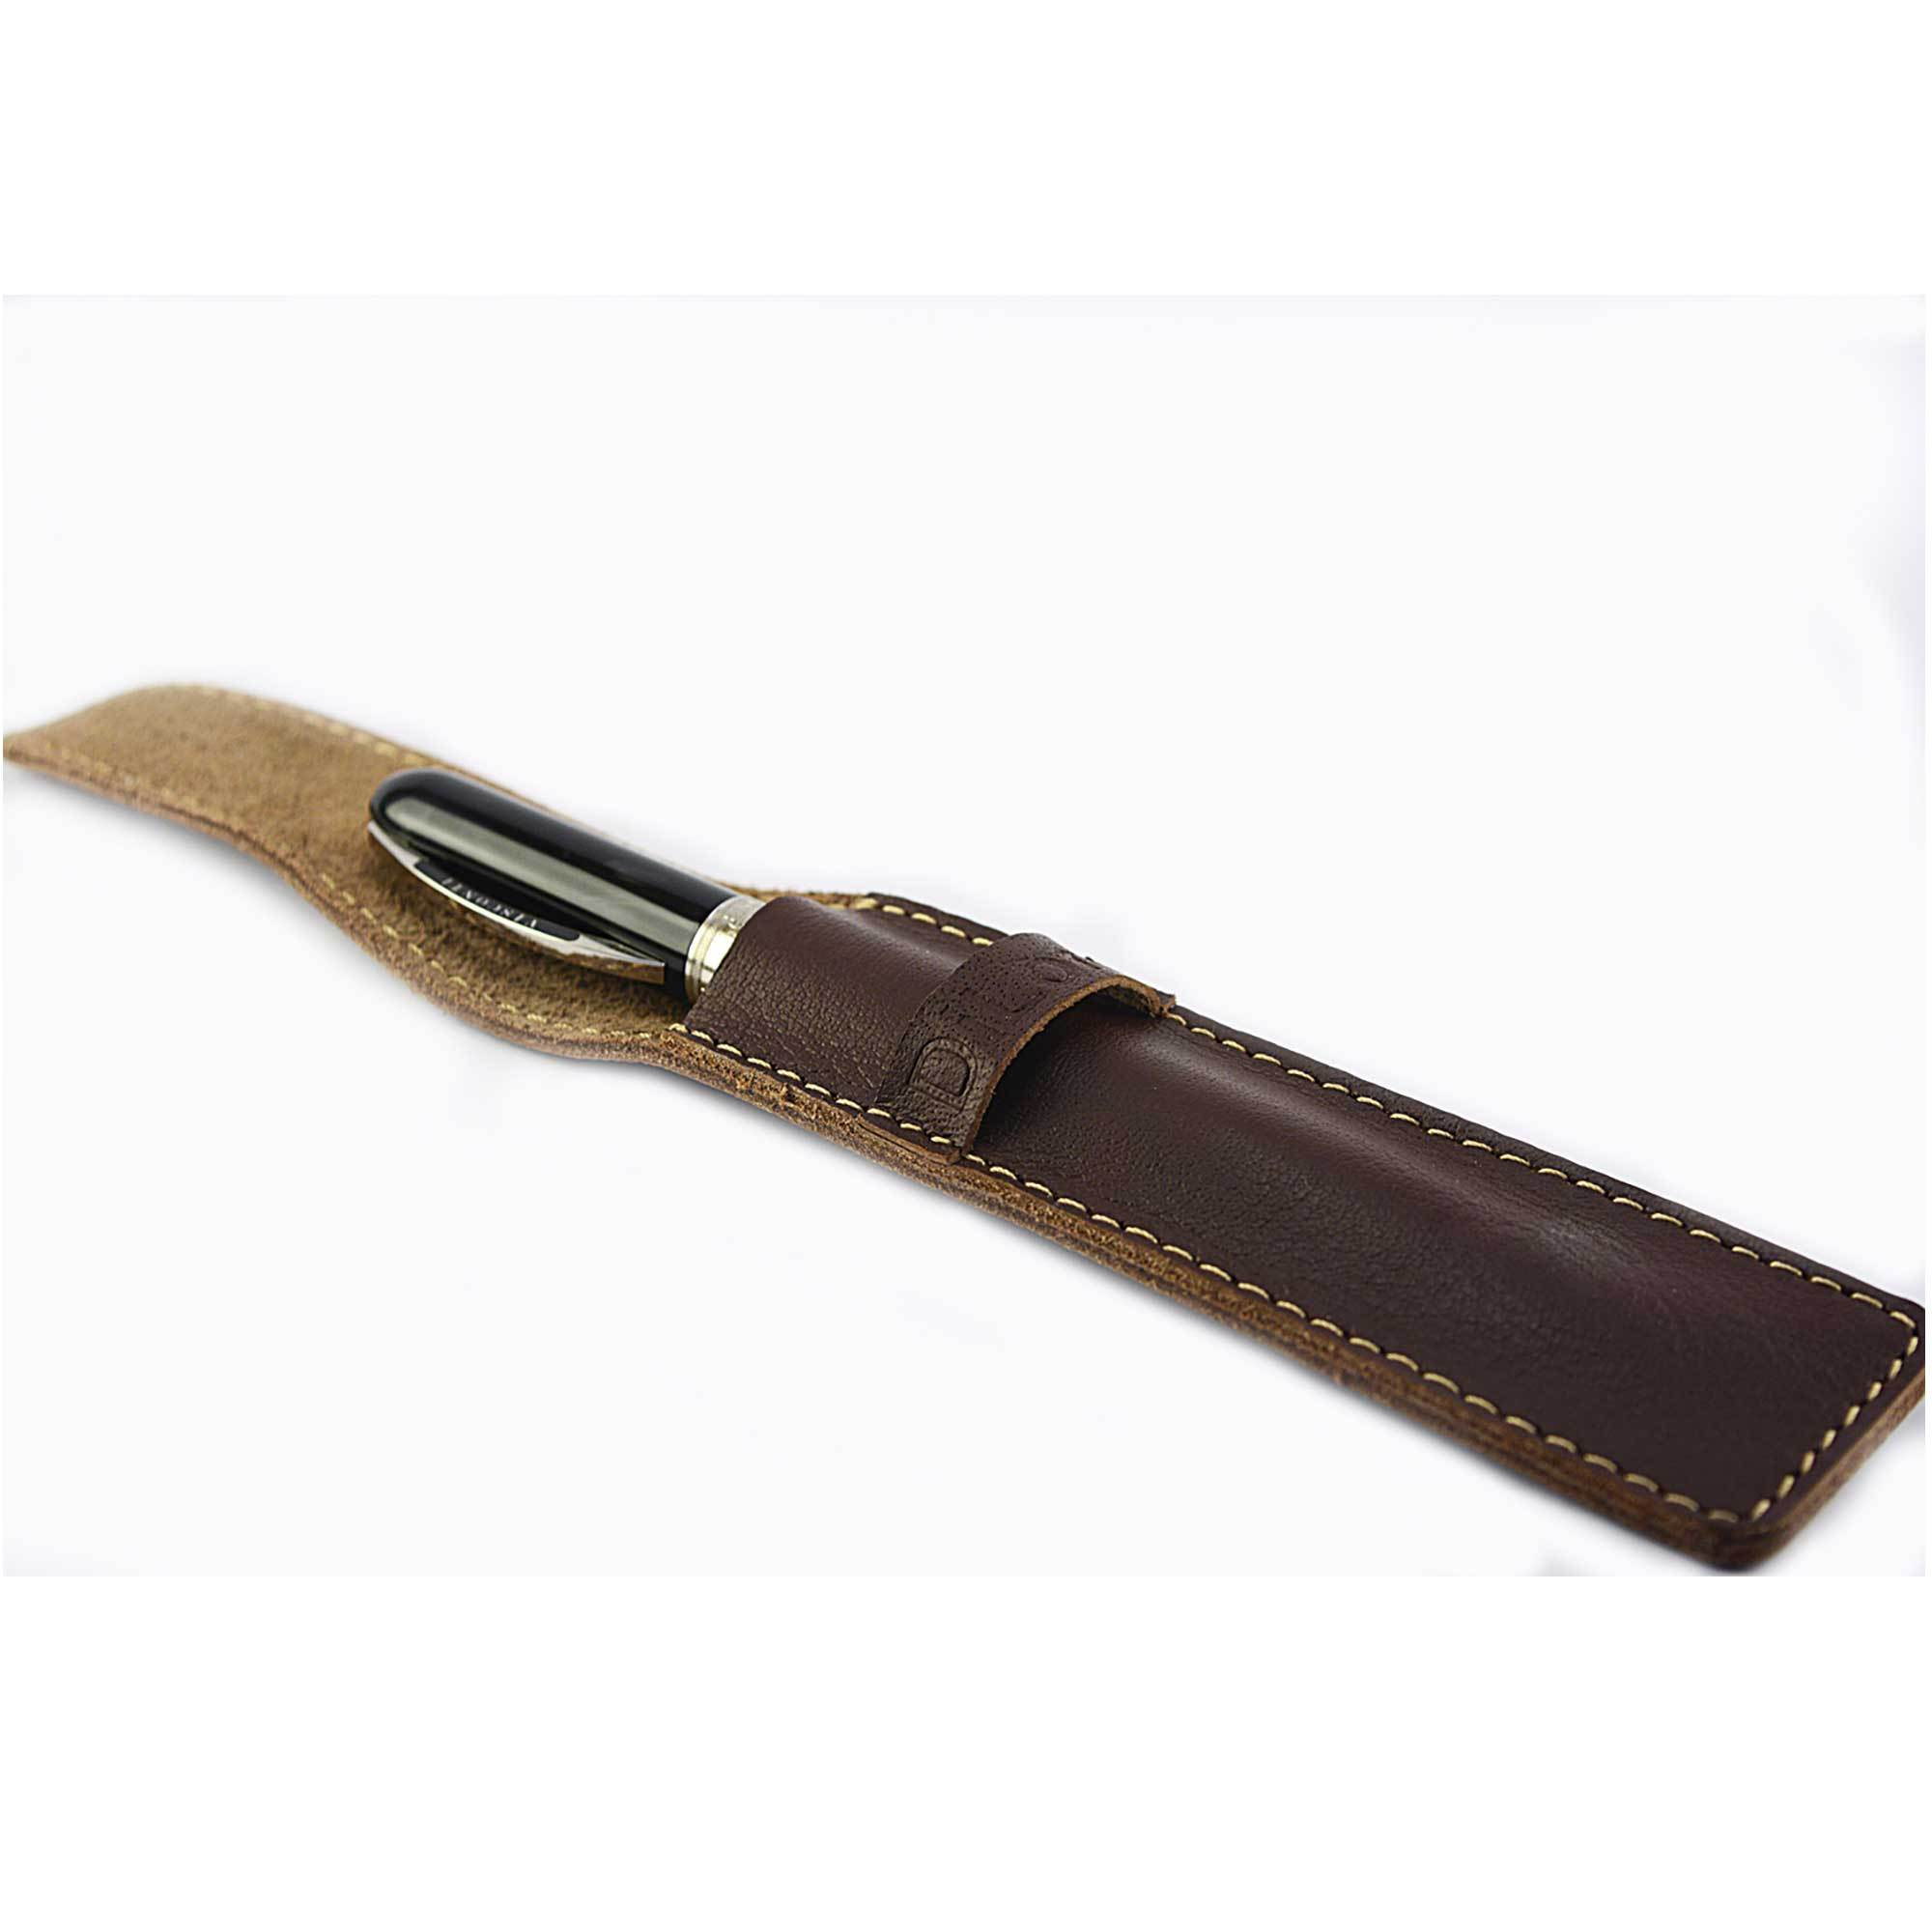 DiLoro Single Leather Pen Holder in Brown Full Grain Leather. Side view open with a Visconti pen inside (pen not included)